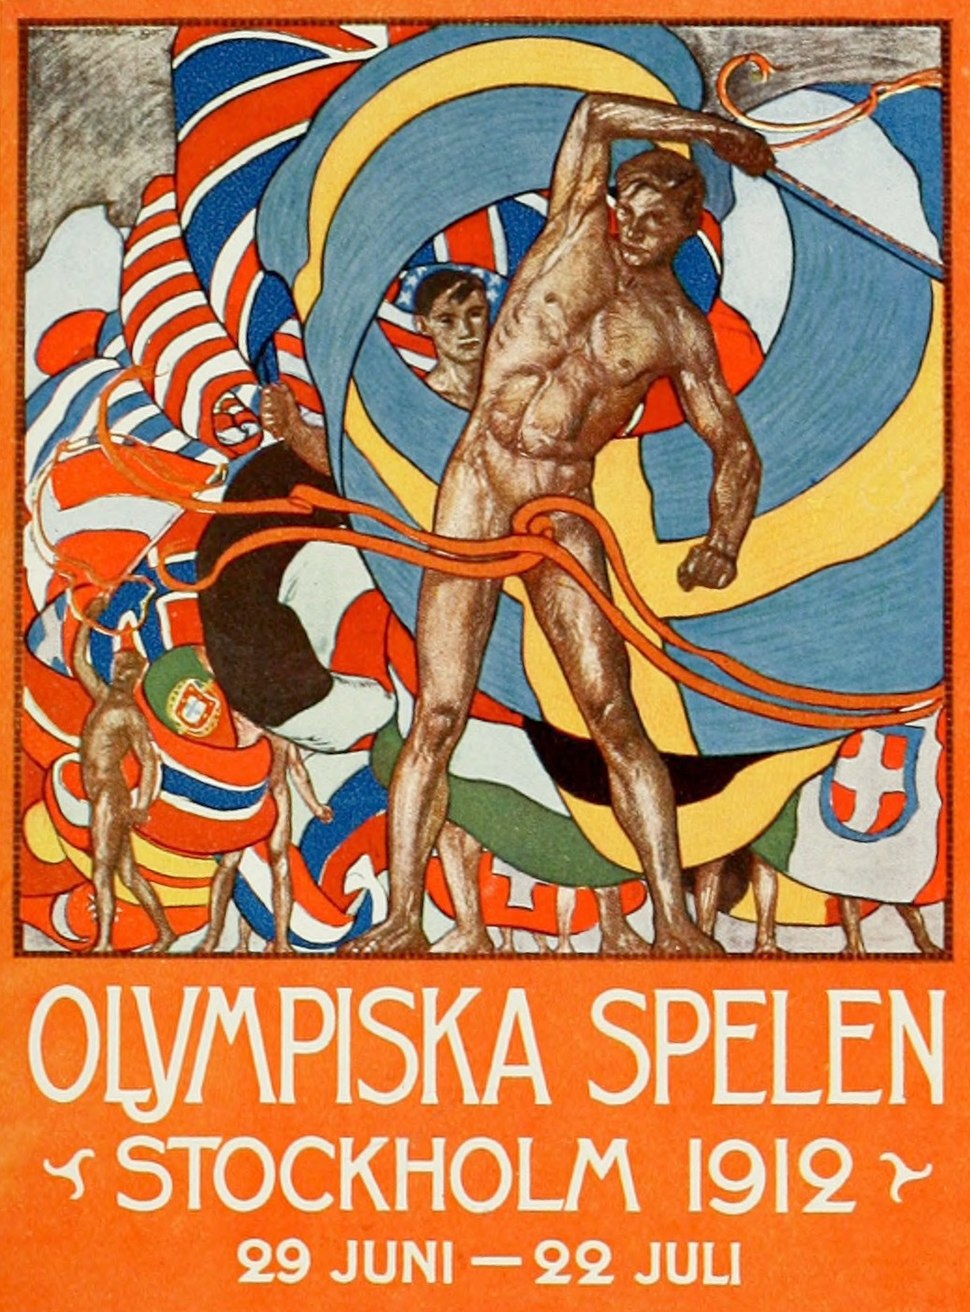 1912 Summer Olympics poster